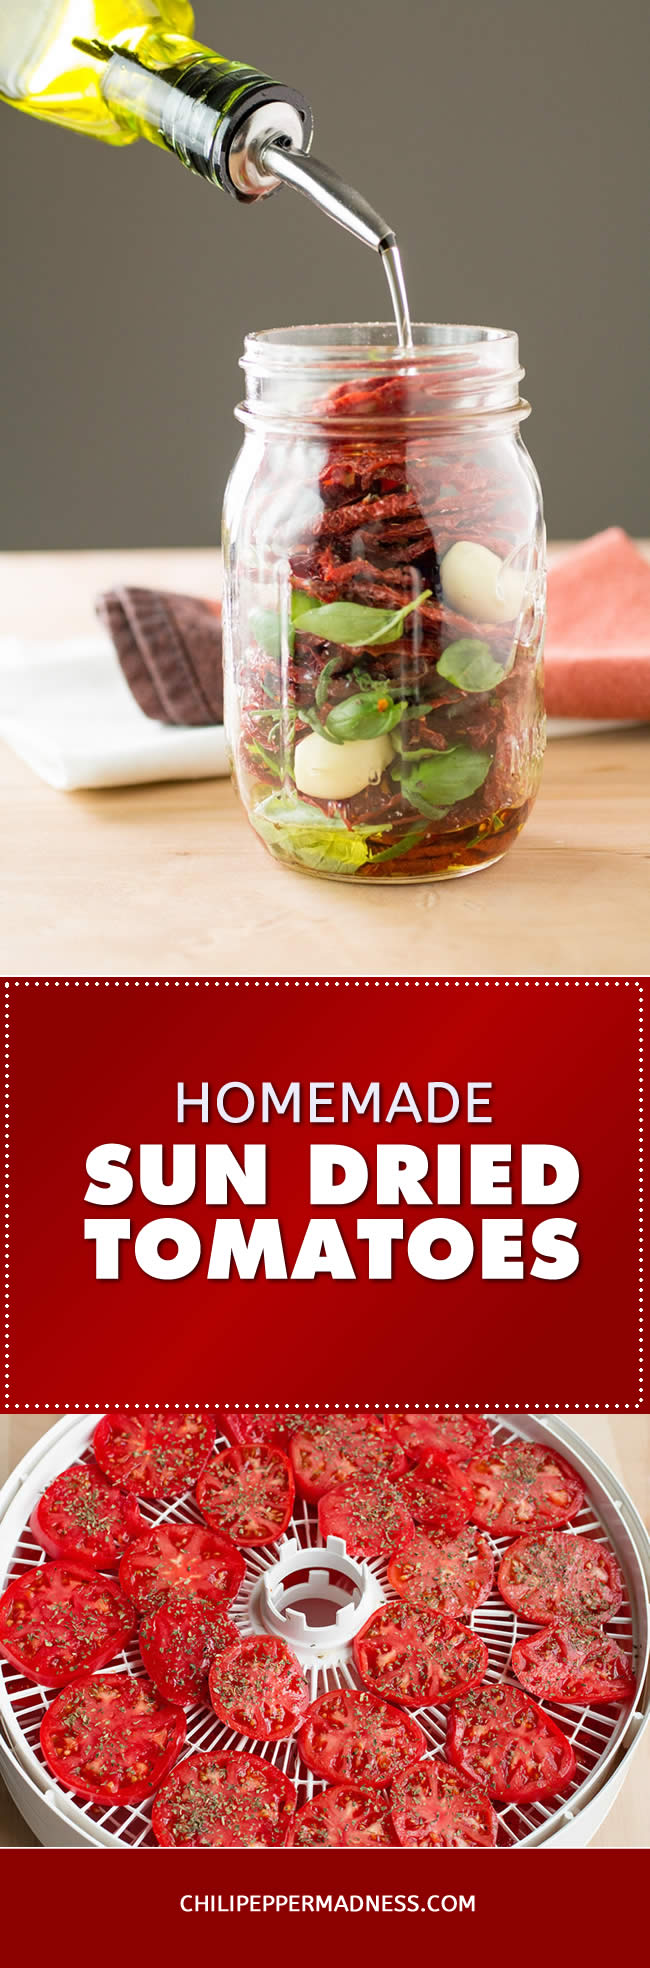 How to Make Sun Dried Tomatoes - with a Dehydrator - Recipe | ChiliPepperMadness.com